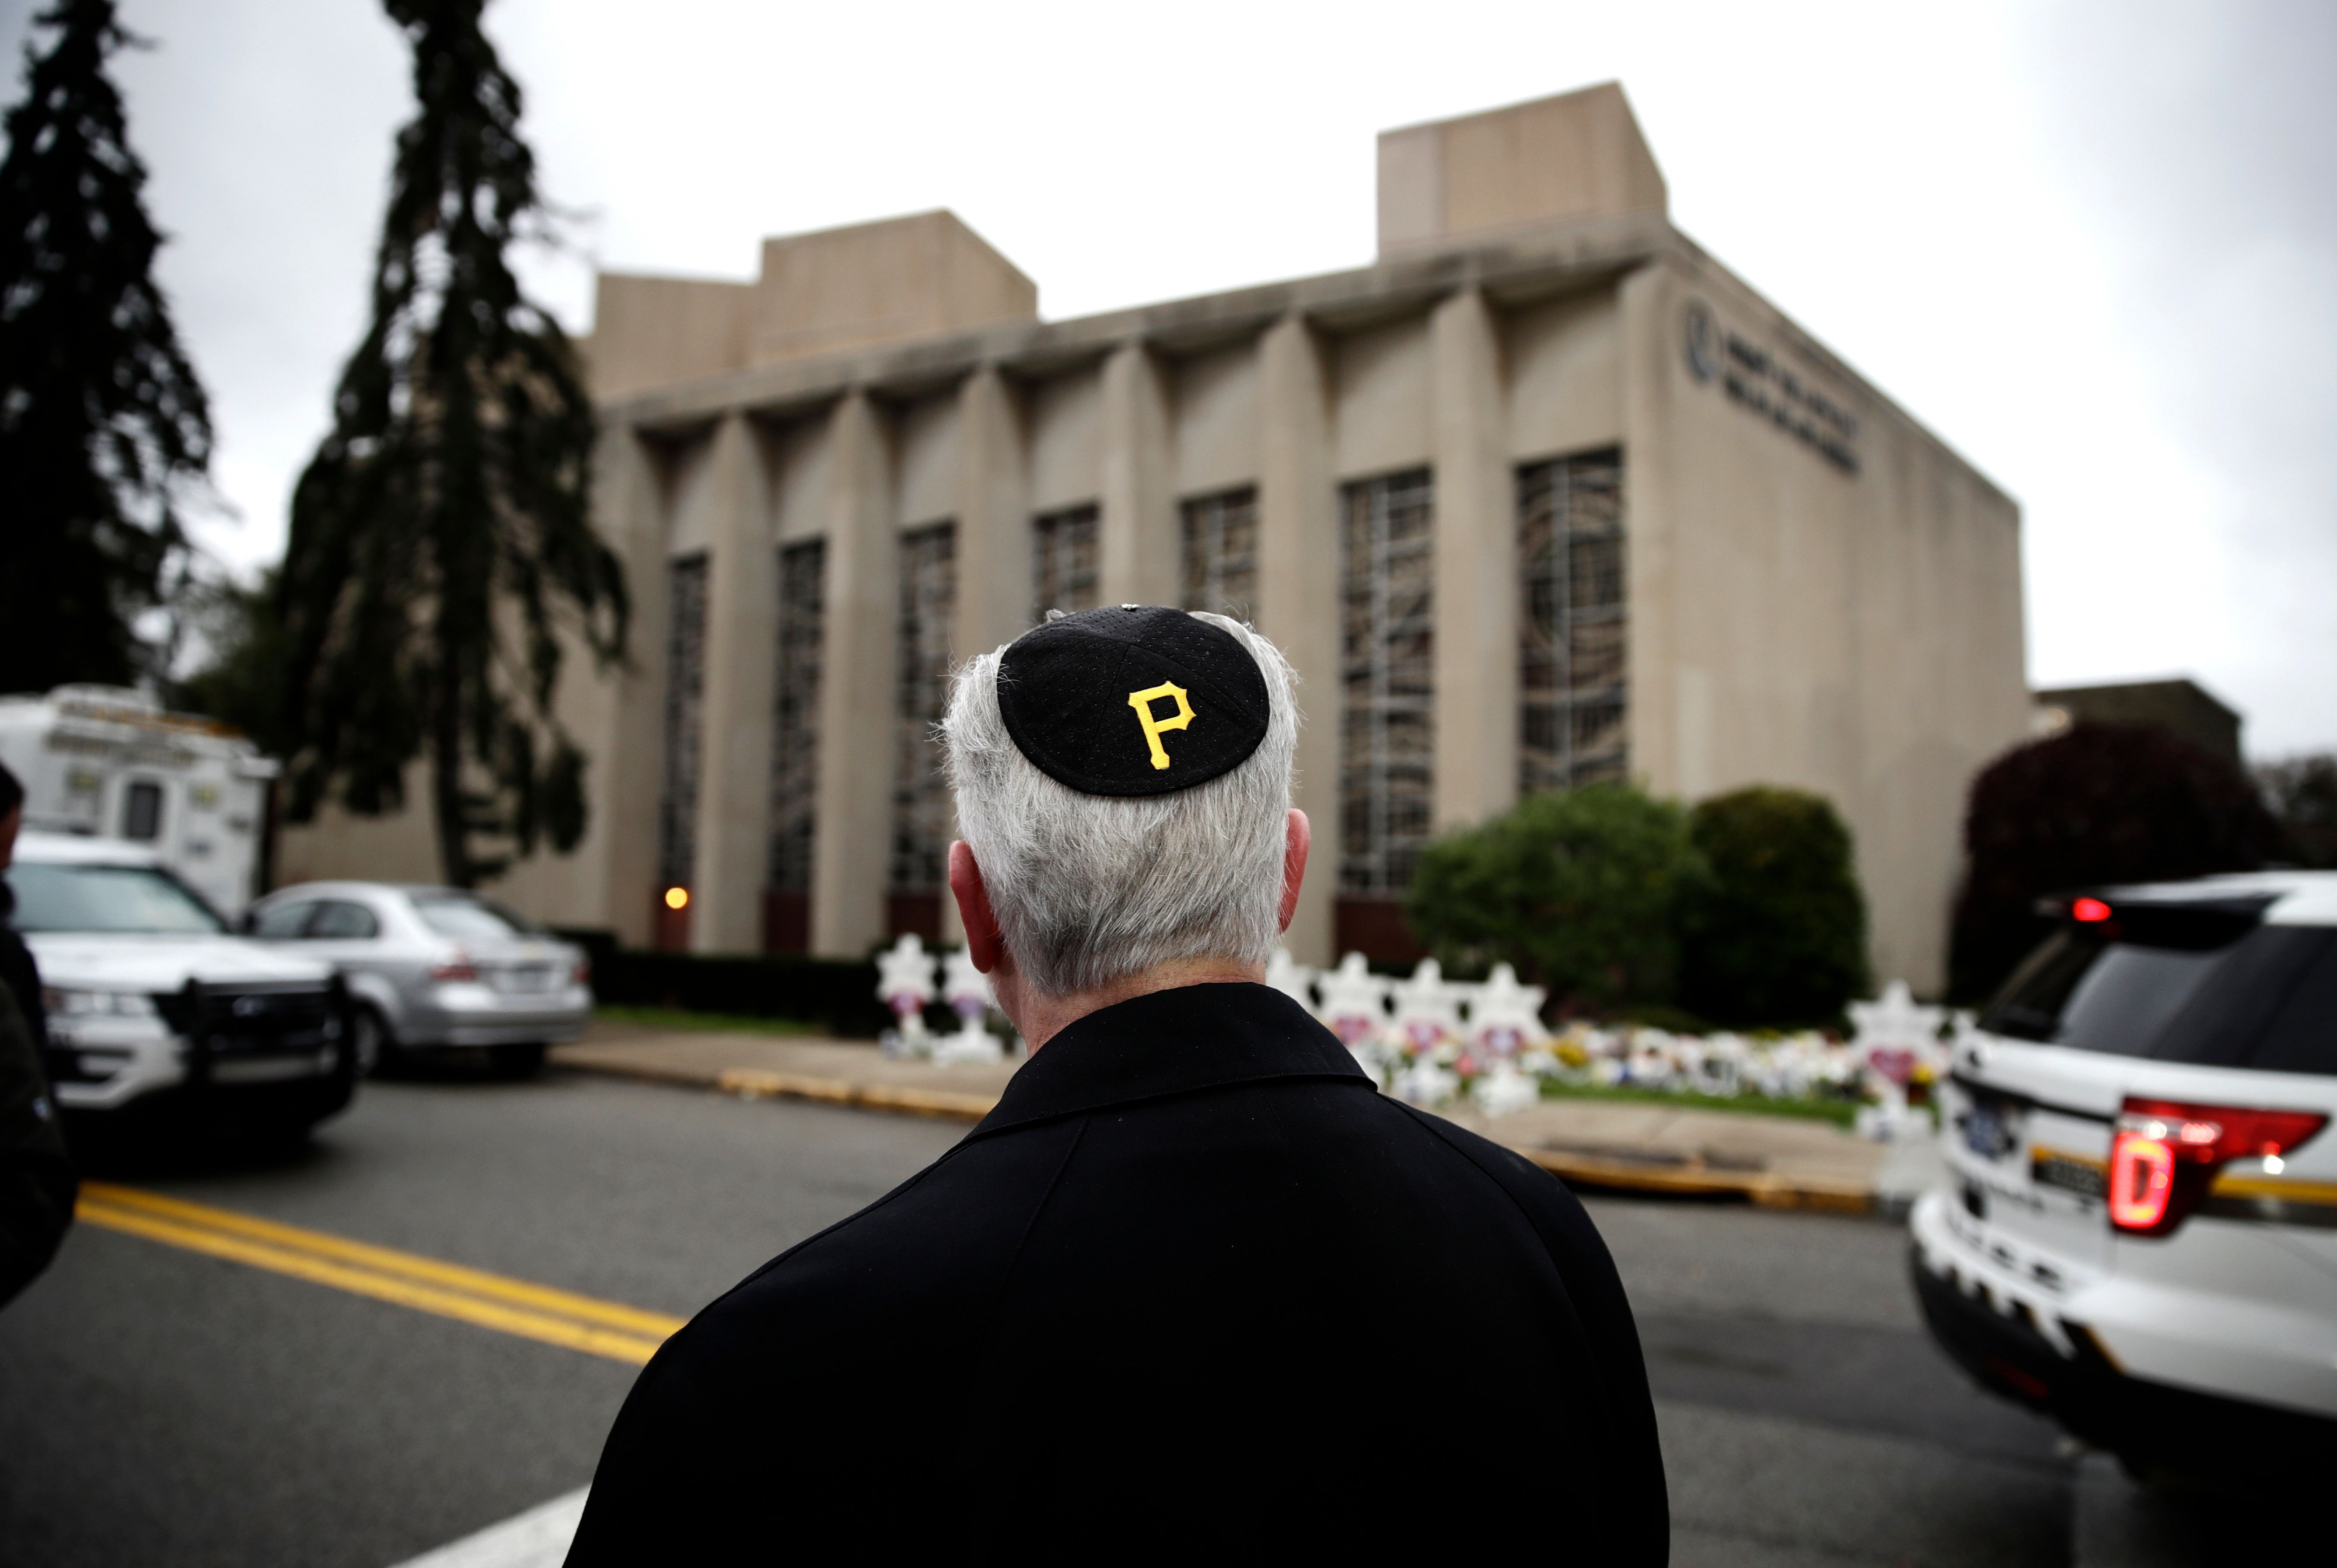 Rabbi Jeffrey Myers of the Tree of Life synagogue stands outside the house of worship onOct. 29, 2018. He wears a yarmu